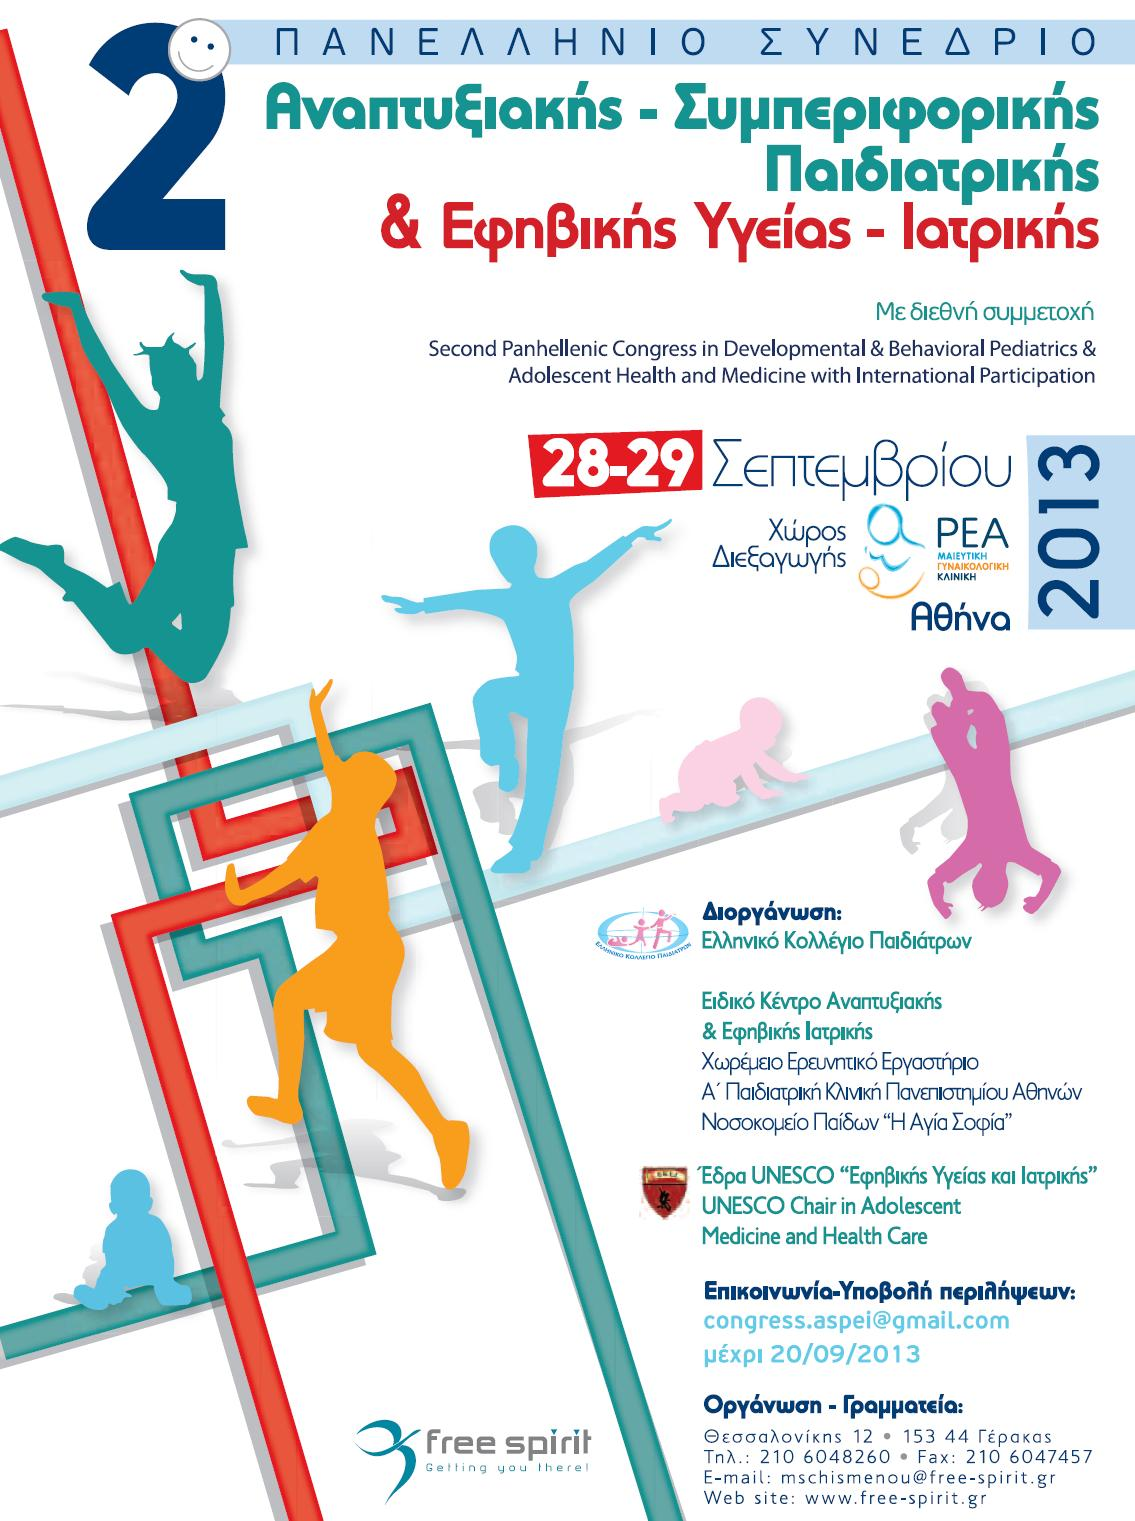 2nd Panhellenic Congress in Developmental & Behavioral Pediatrics & Adolescent Medicine